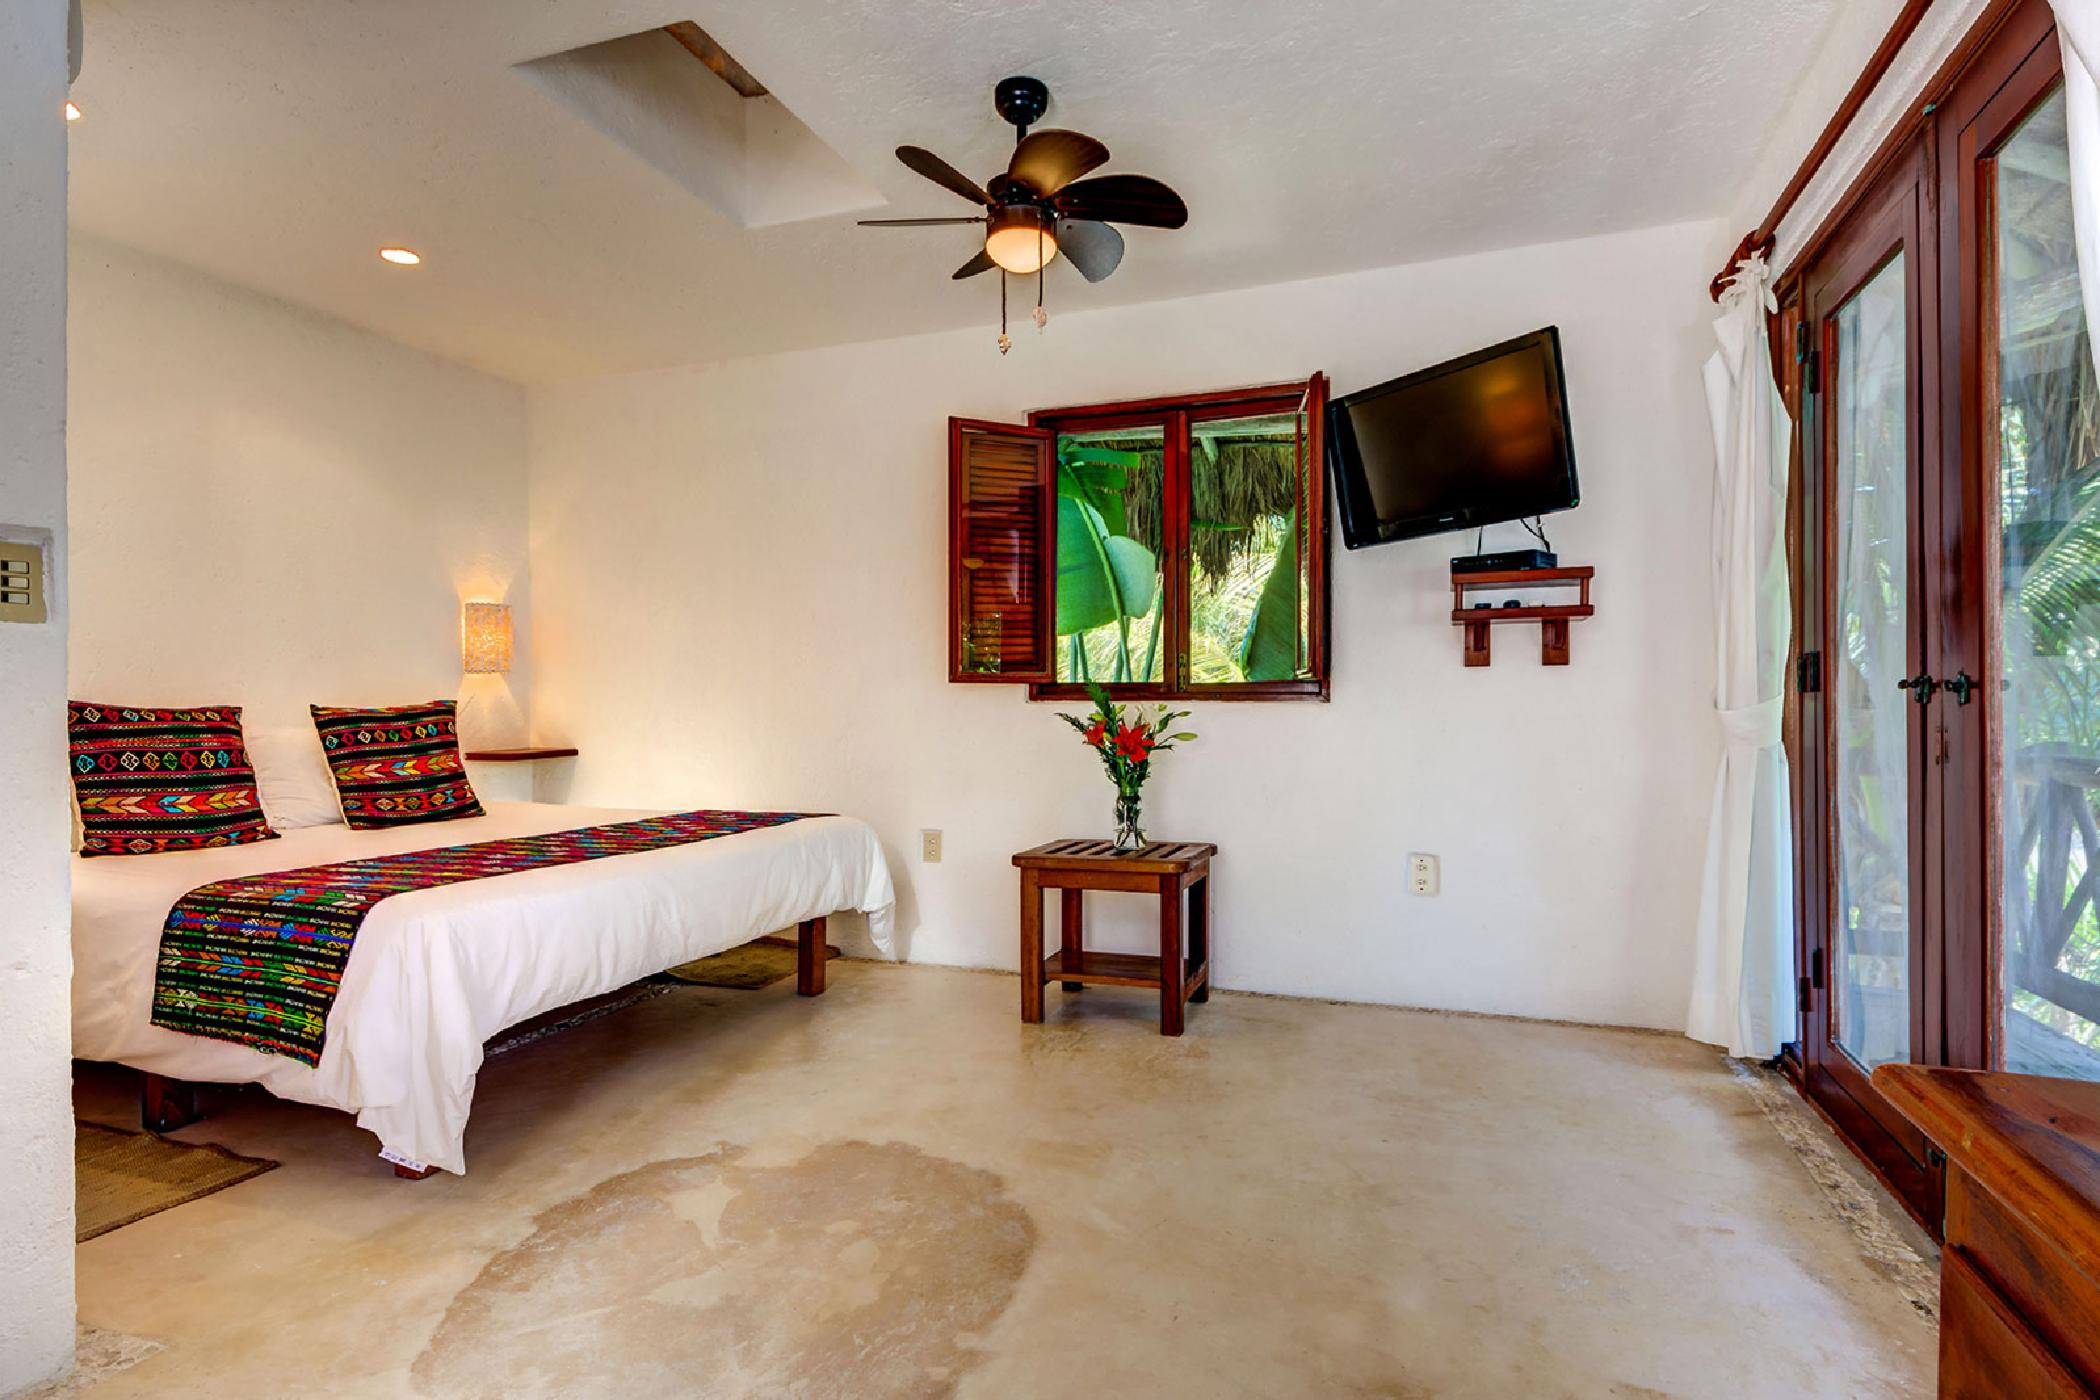 Luxurious Puerto Aventuras 4 BDR oceanfront home; Private beach, pool, snorkeling, kayaking, resort location with golf and marina